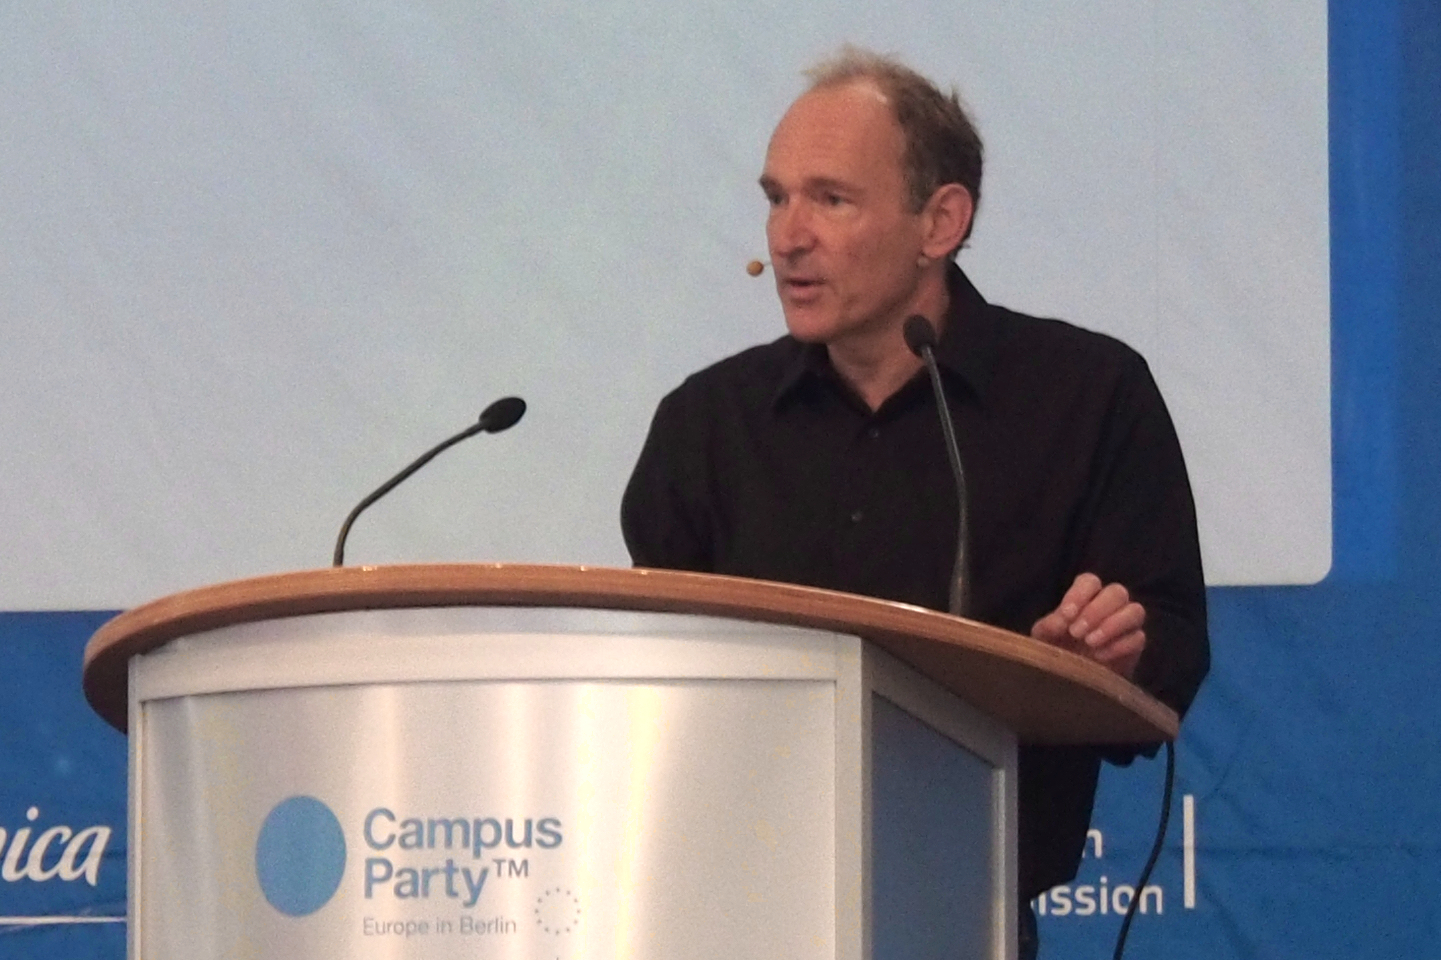 Tim Berners-Lee, speaking at a Telefonica Campus Party event in Berlin in 2013